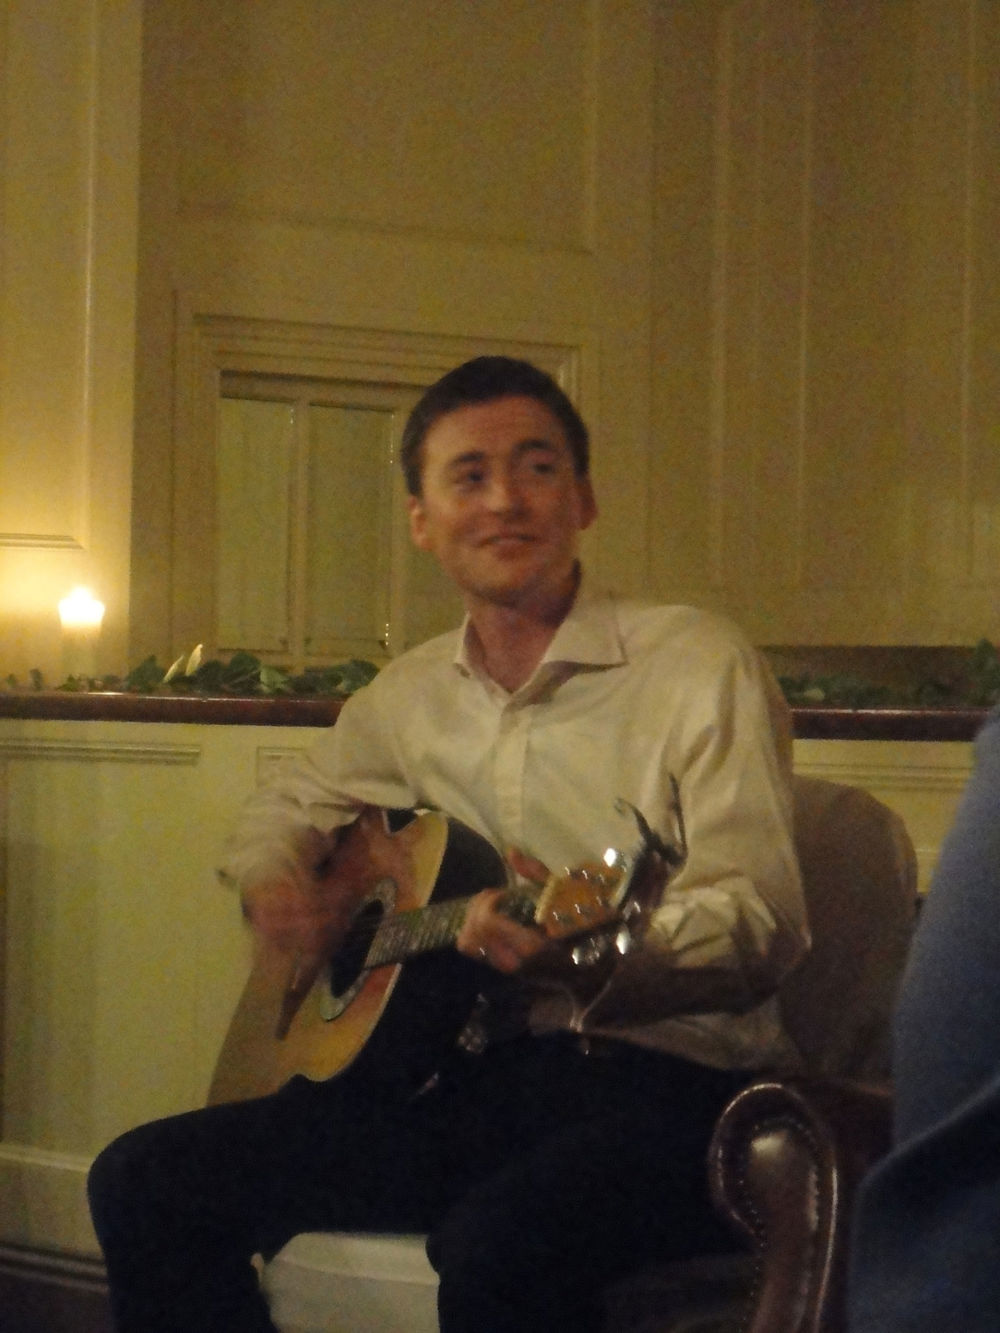 Blurry shot of my groom entertaining the late crowd :)